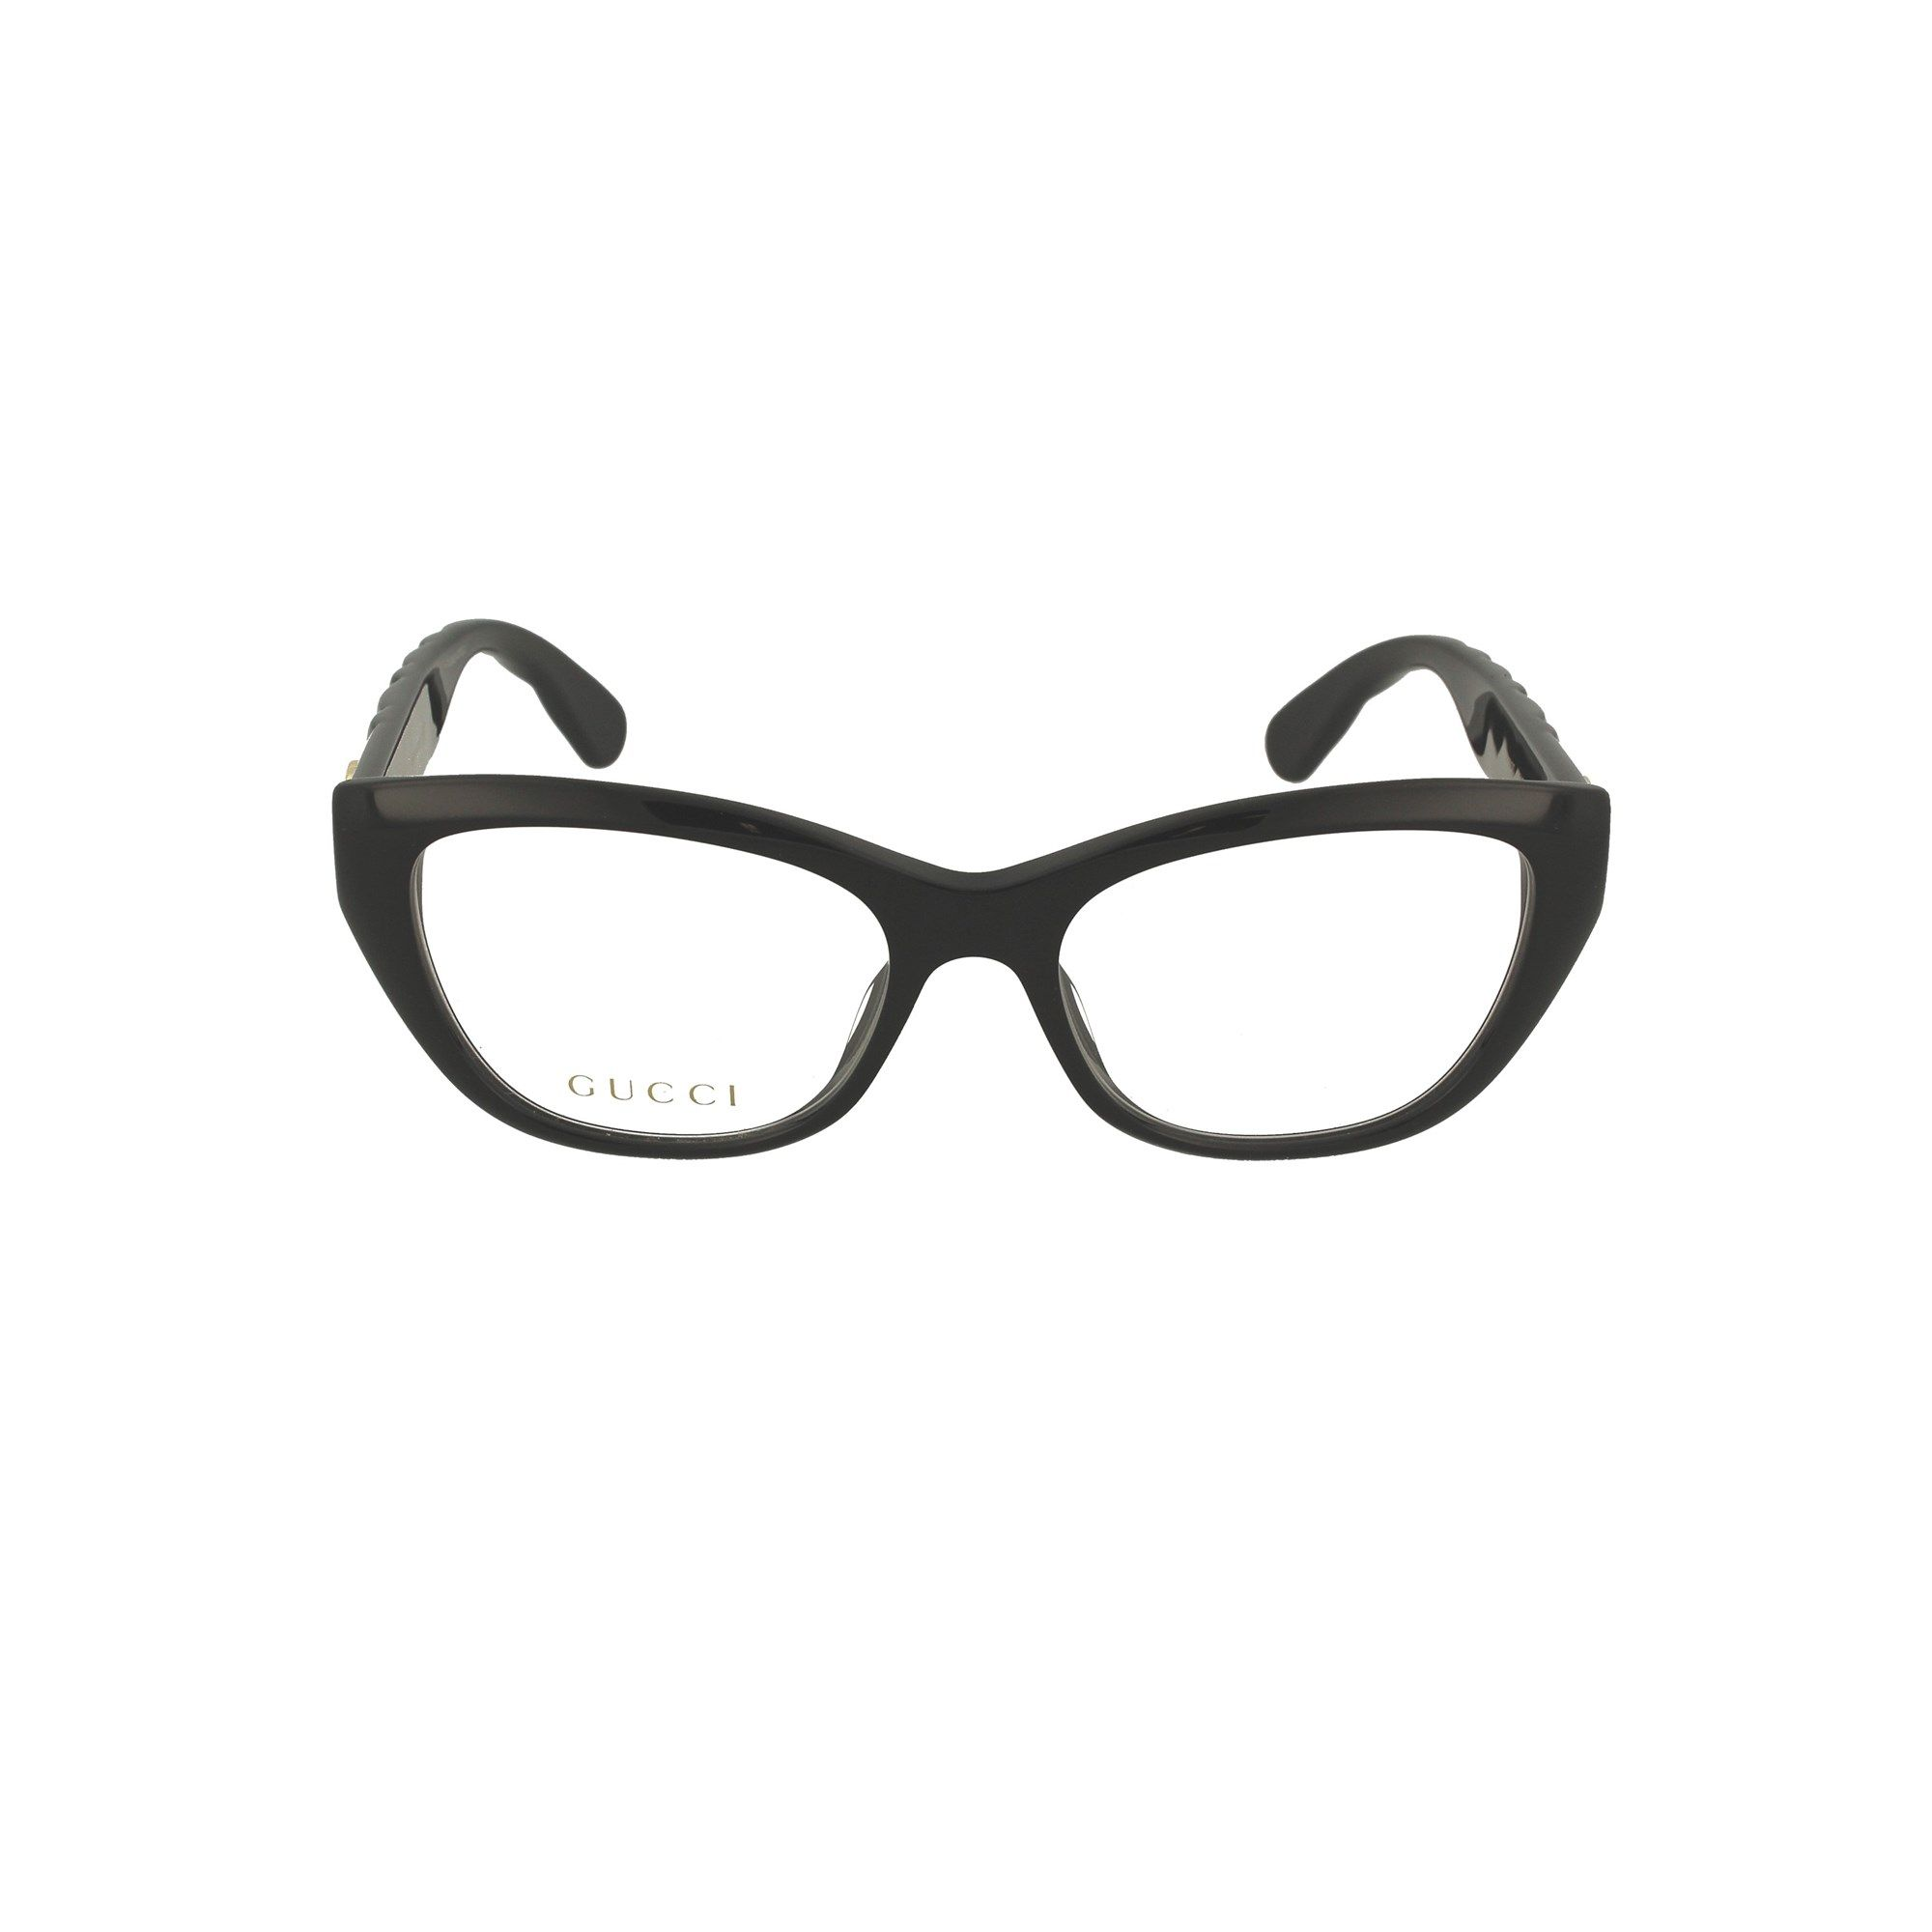 Gucci GUCCI WOMEN'S BLACK METAL GLASSES